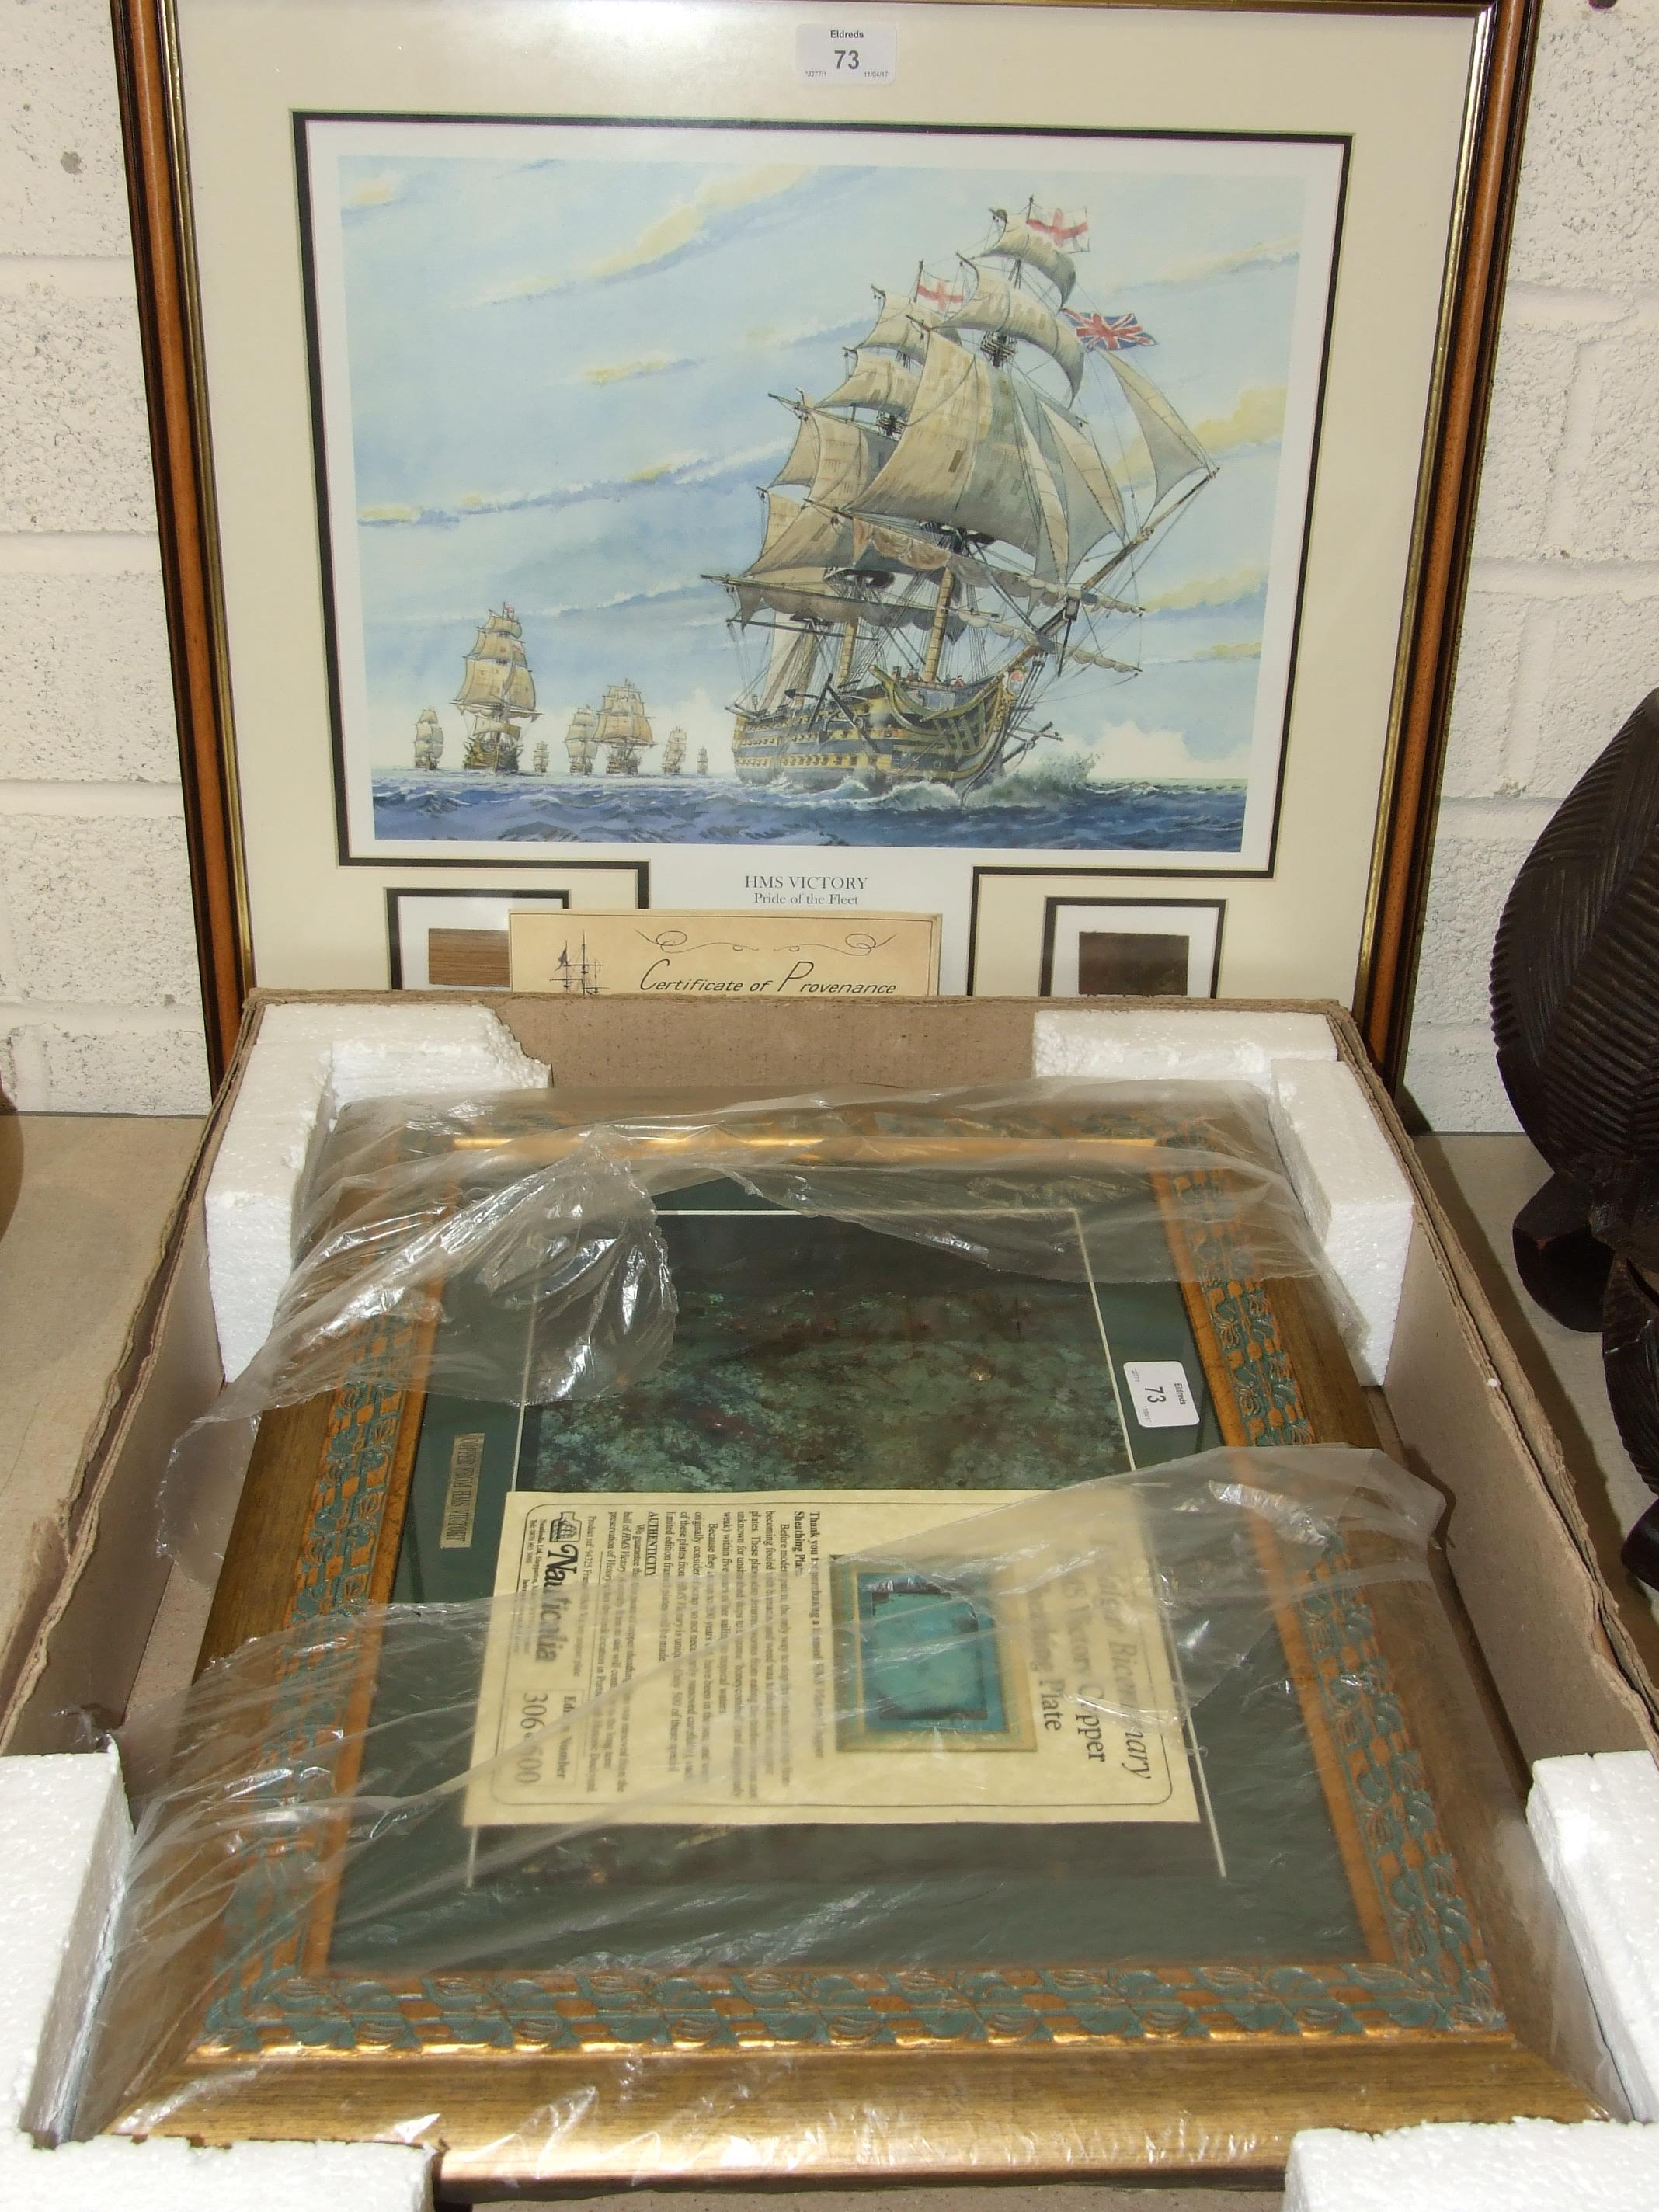 A Nauticalia presentation case containing a copper sheathing plated from HMS Victory, edn no.306/